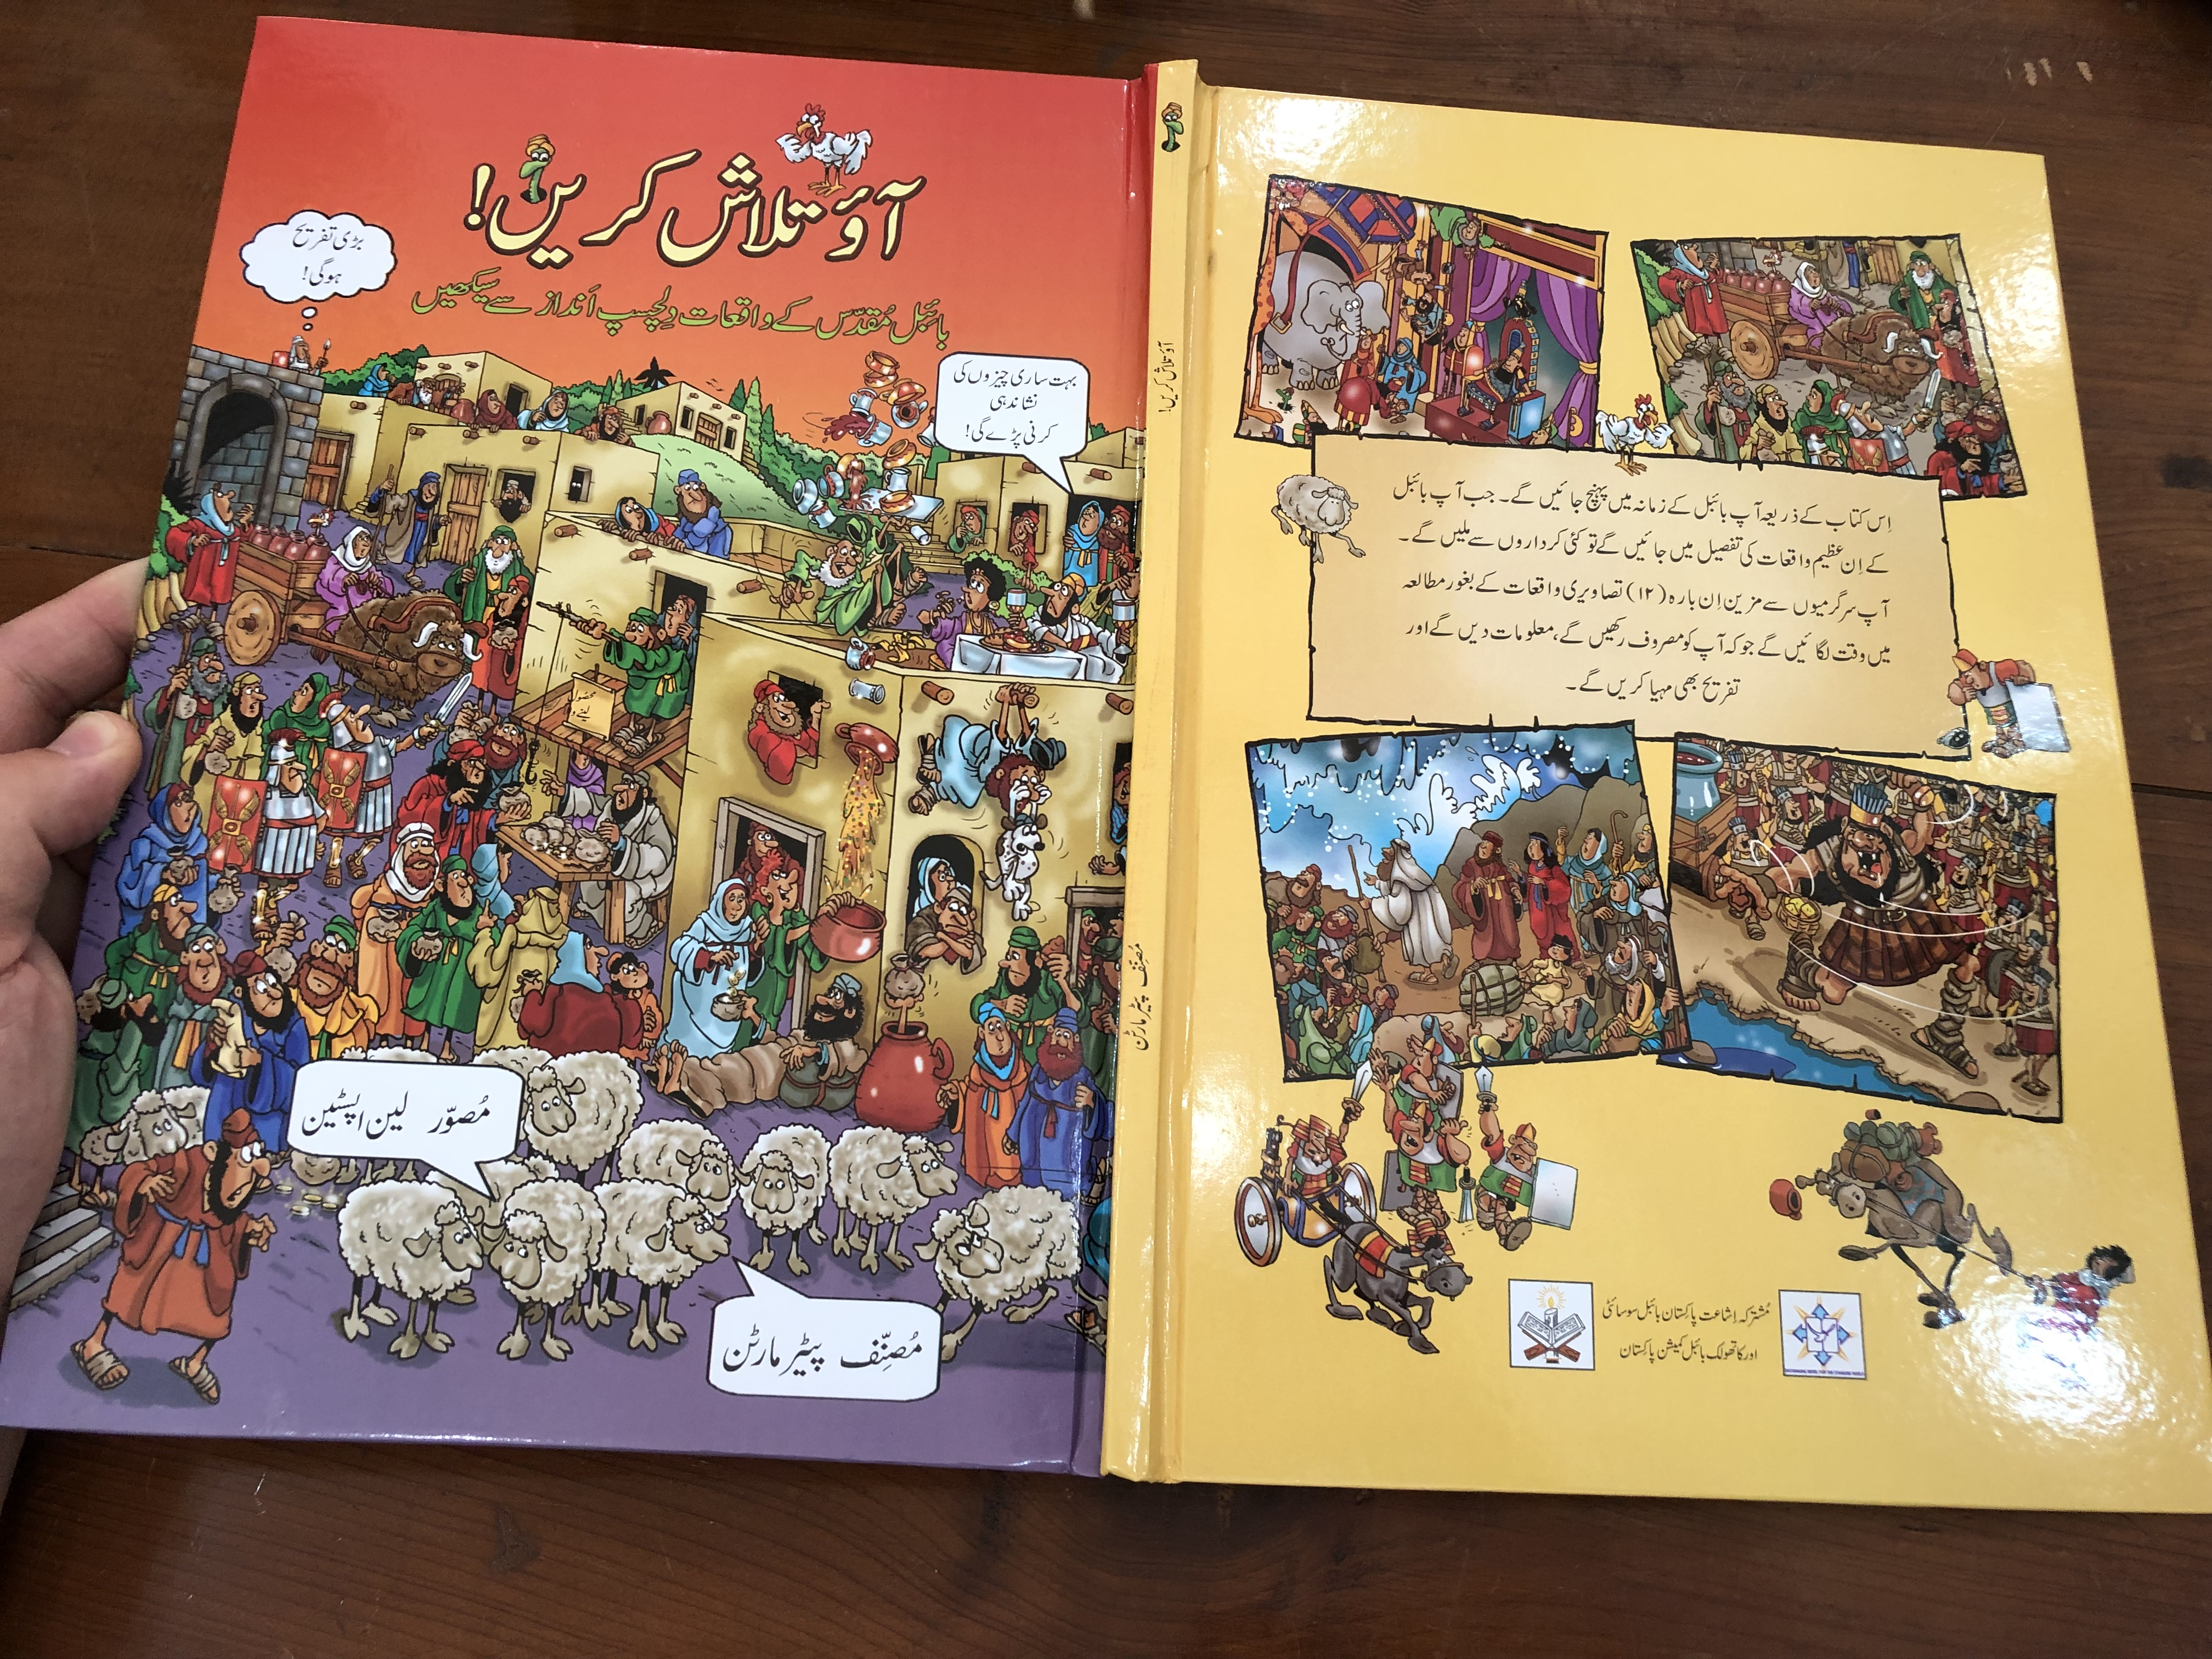 -the-lion-picture-puzzle-bible-in-urdu-language-by-peter-martin-illustrations-len-epstein-pakistan-bible-society-catholic-bible-comission-pakistan-hardcover-2017-11-.jpg